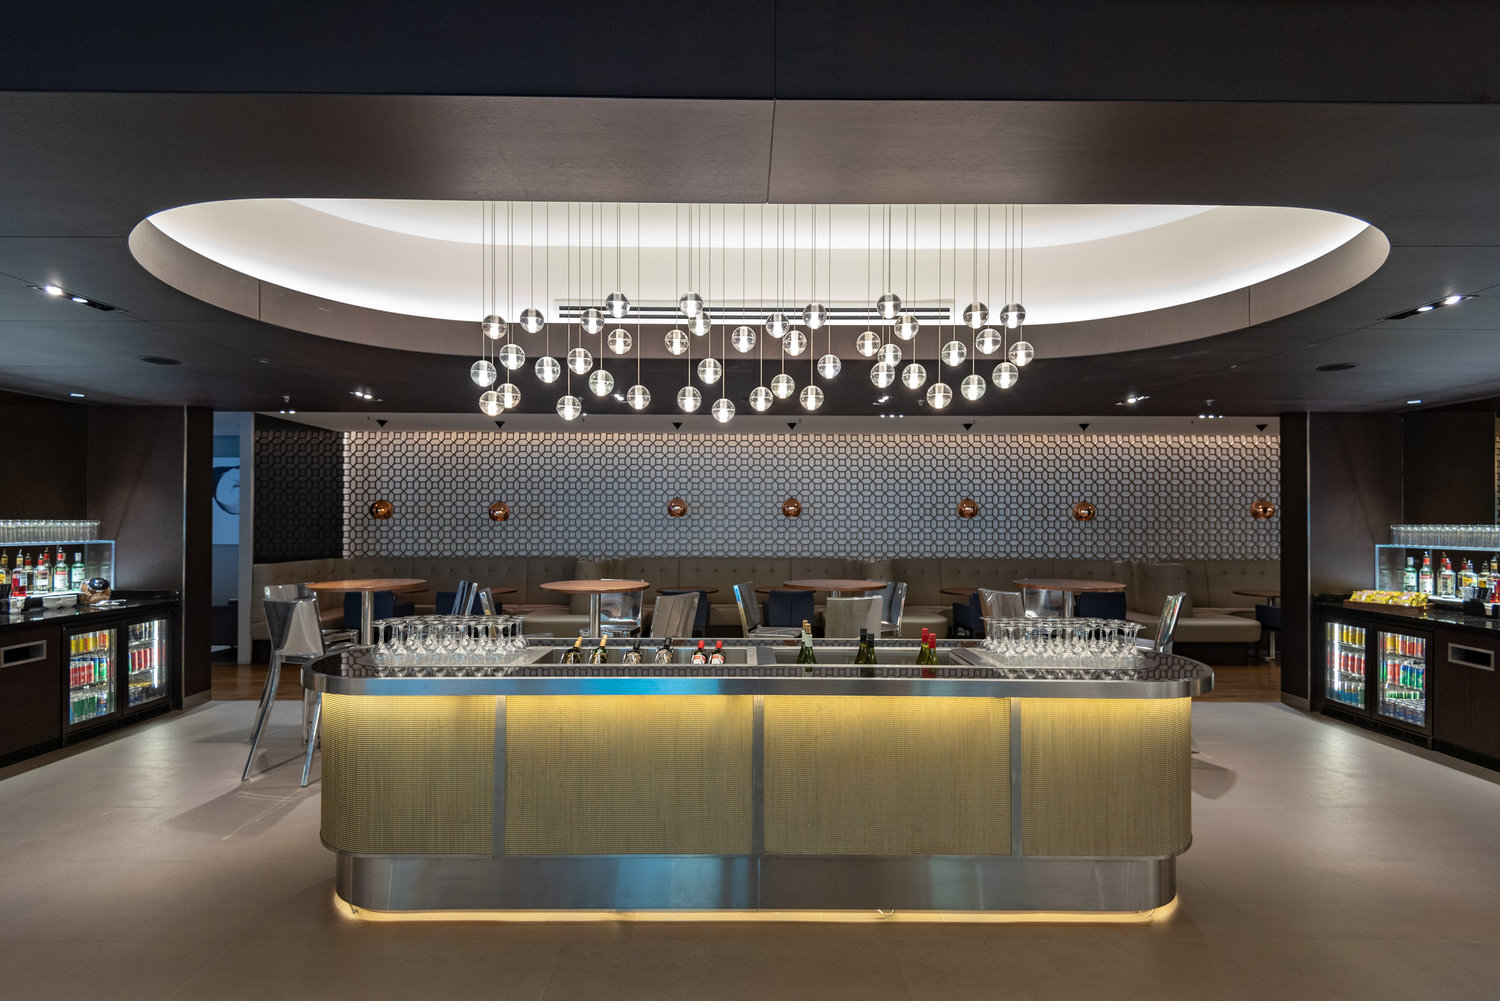 Lounge Review: British Airways Lounge and Concorde Bar